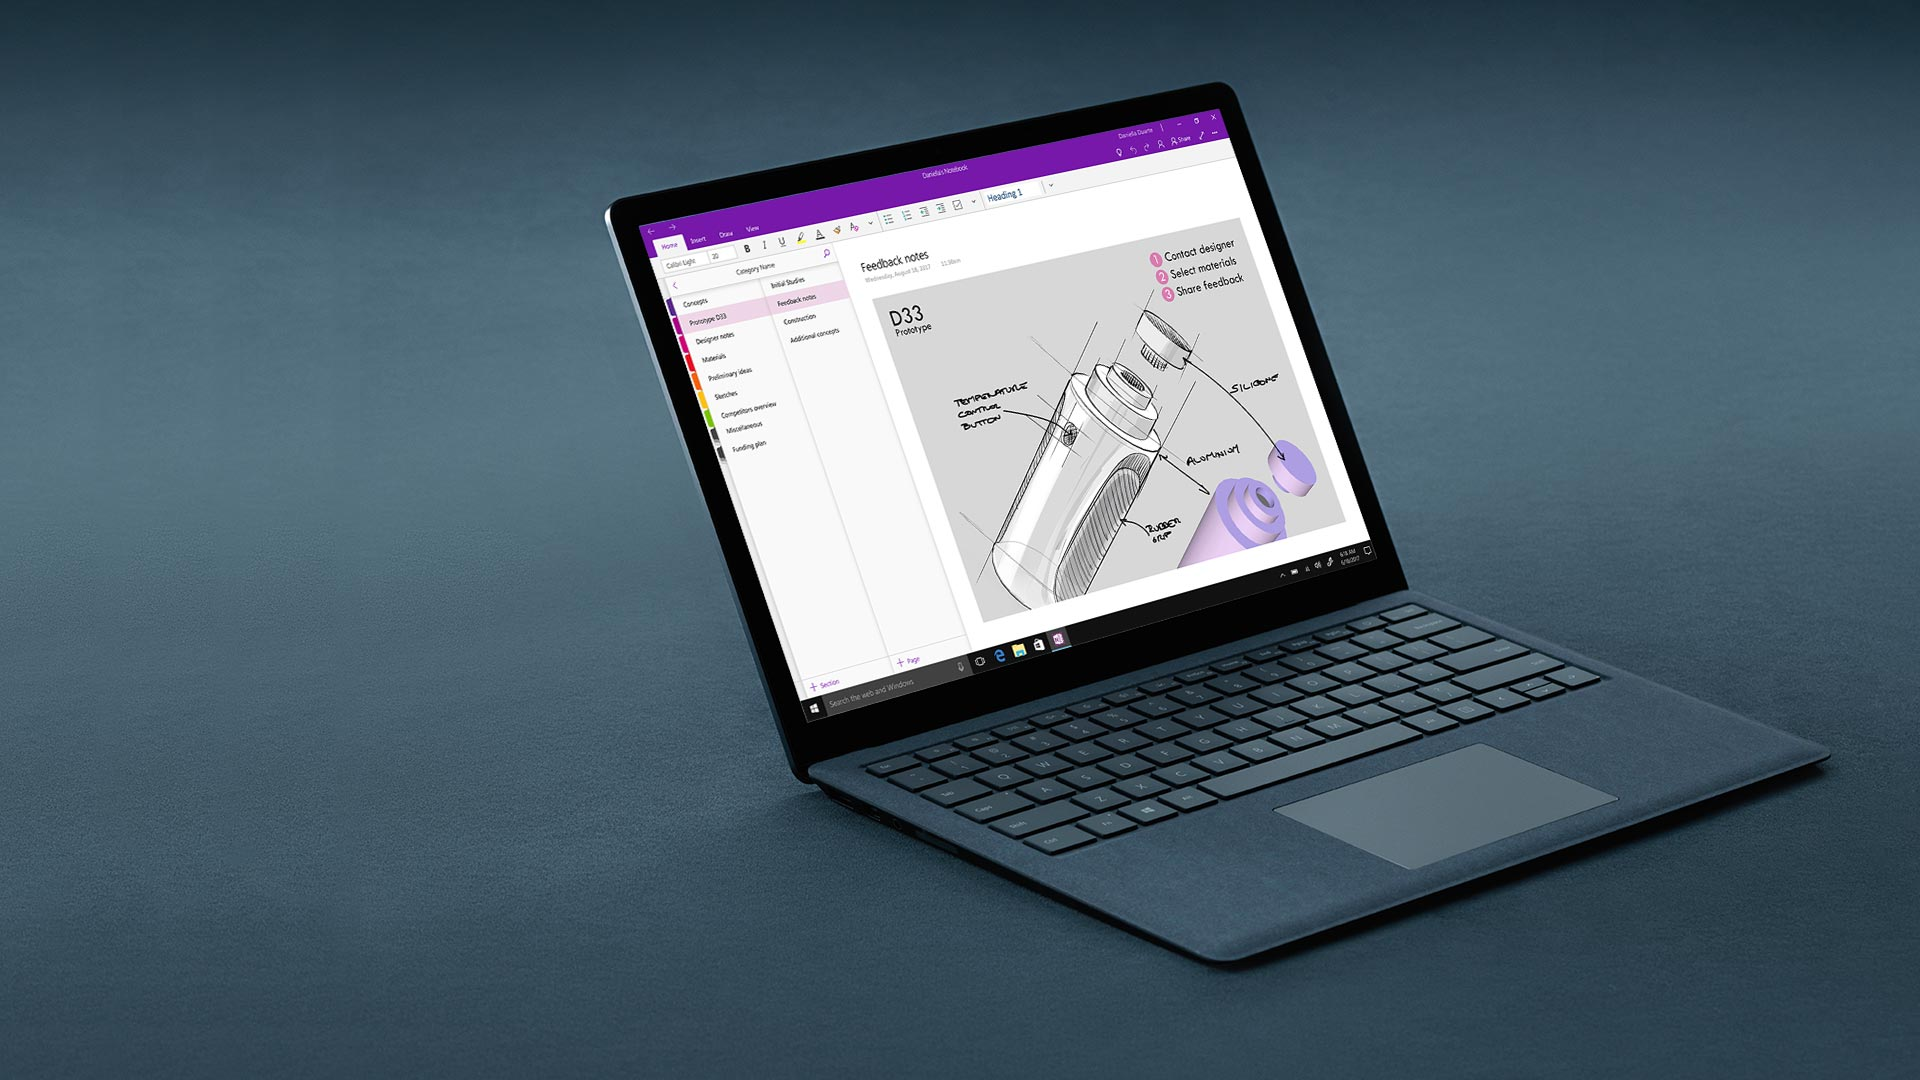 Cobalt Blue Surface Laptop with One Note screen.